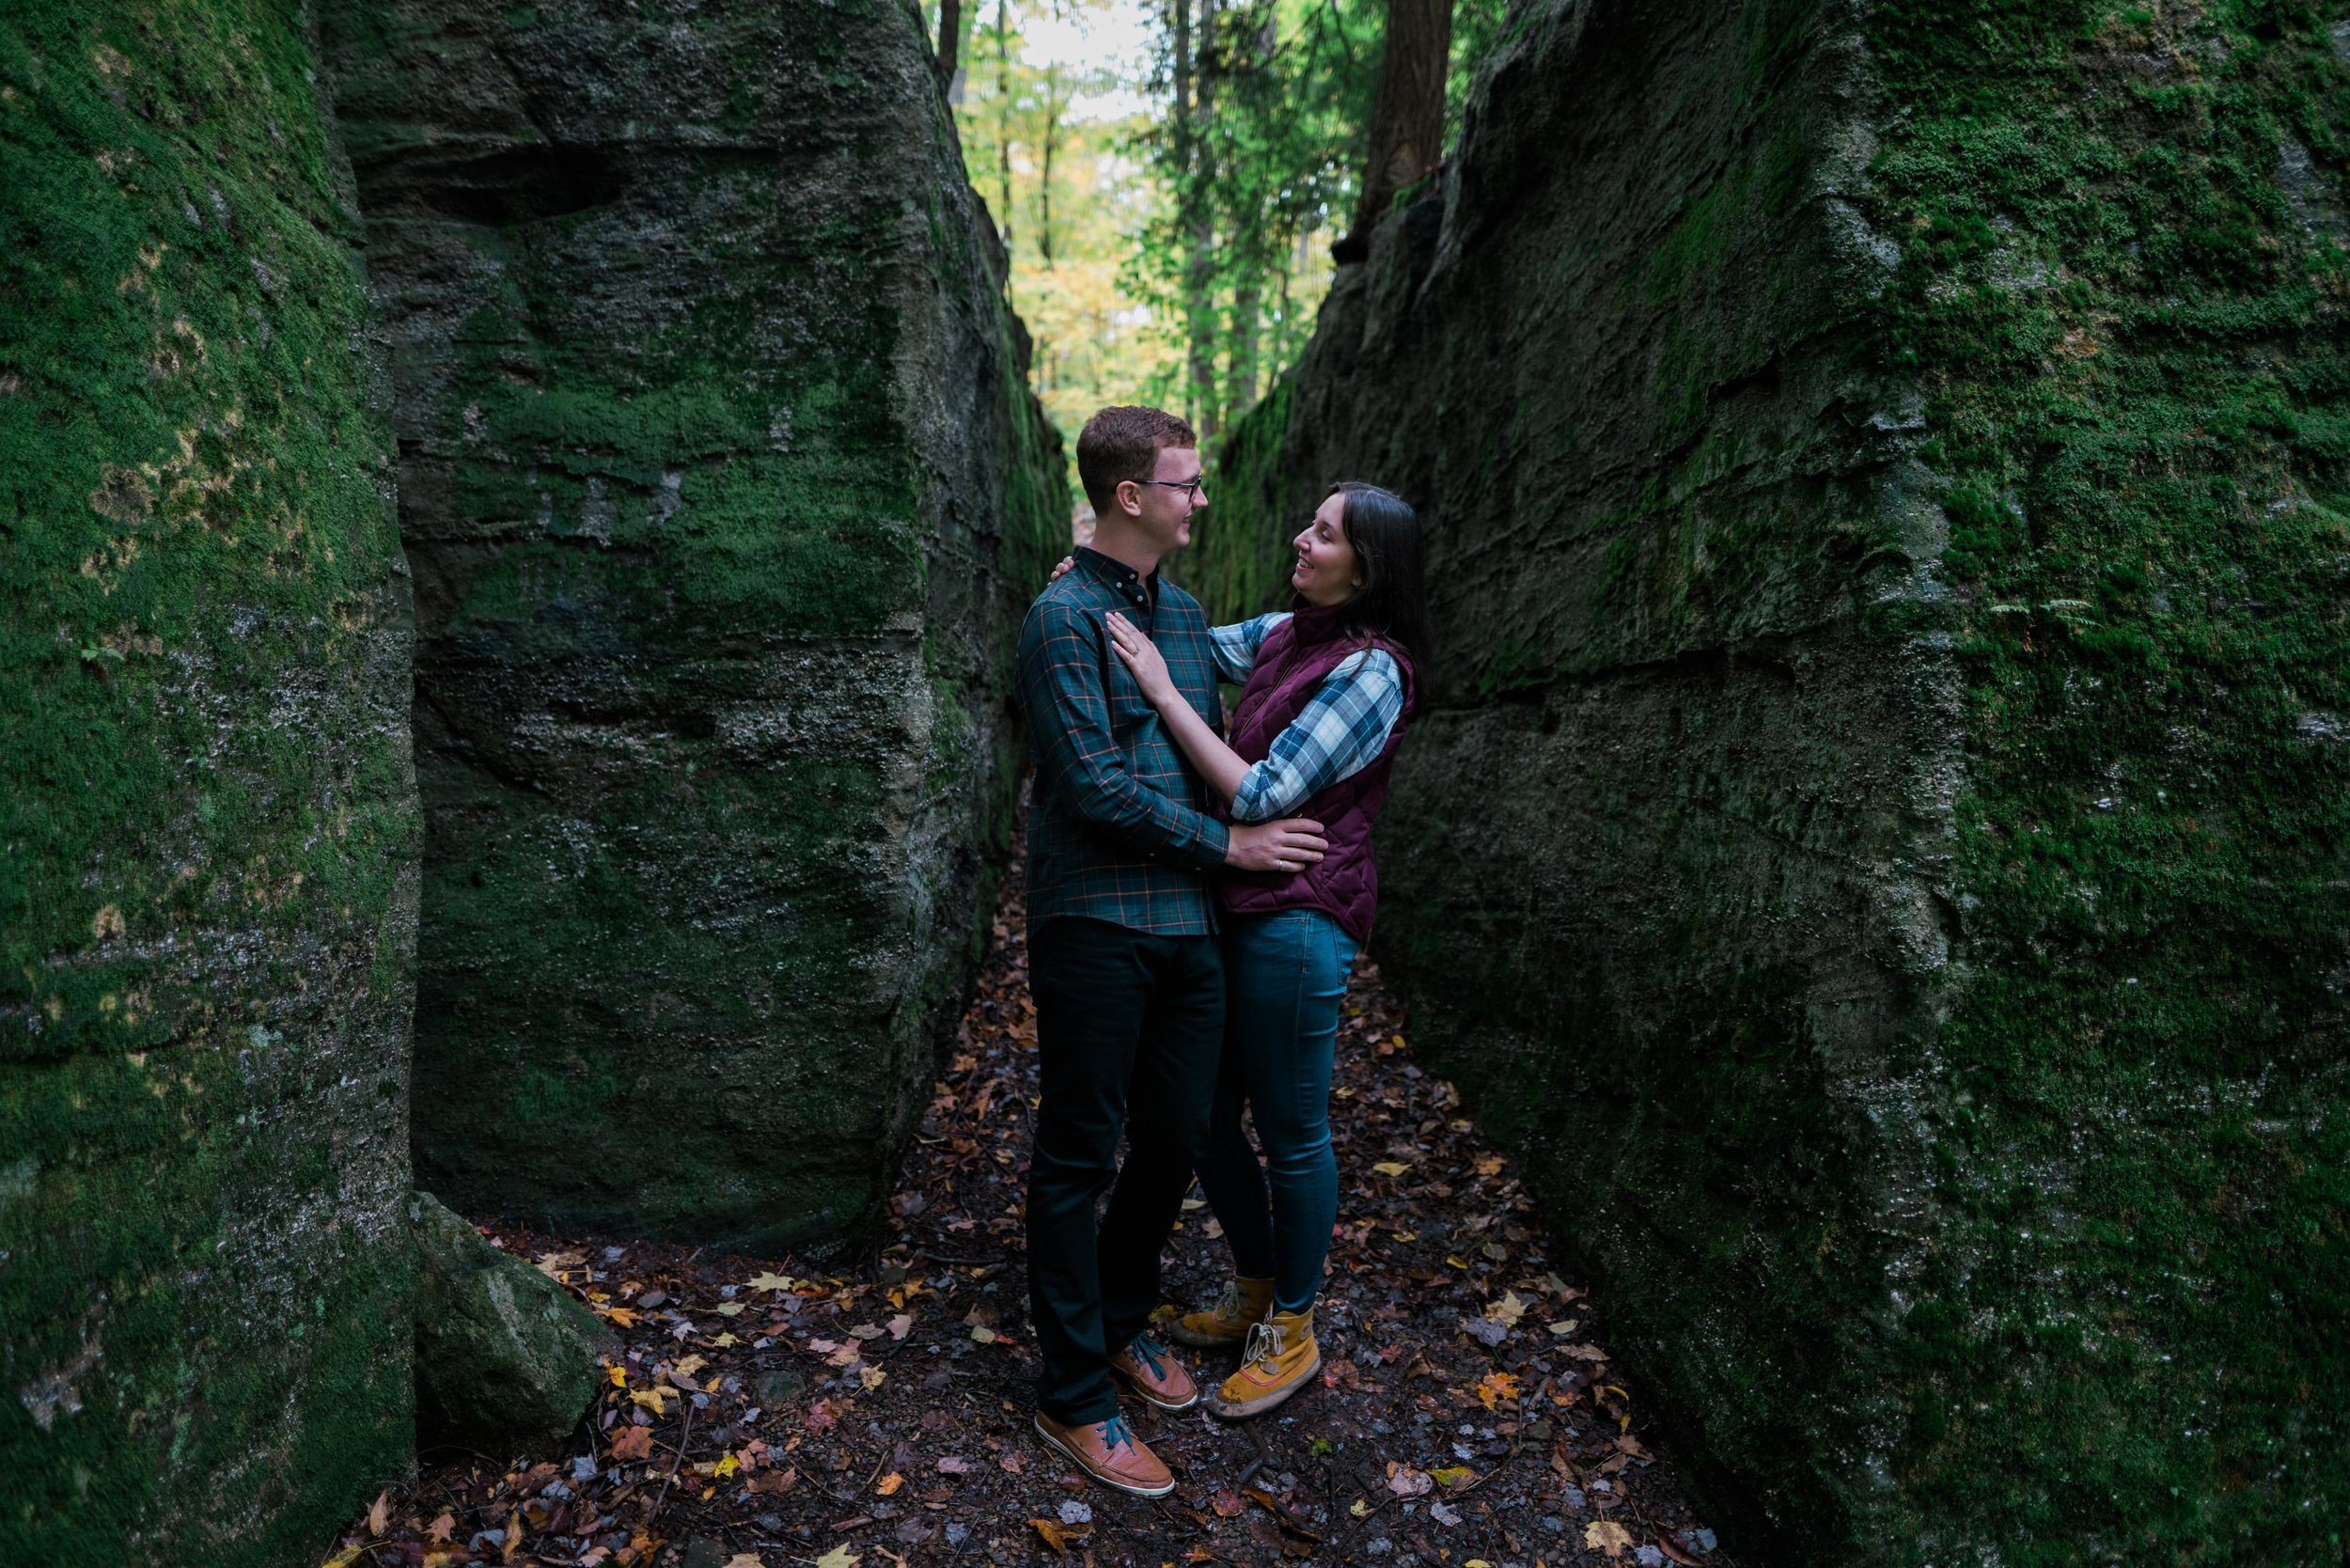 Jessica and JR Engagement Photography by Stefan Ludwig at Rock City State Park in Ellicottville, NY-19.jpg